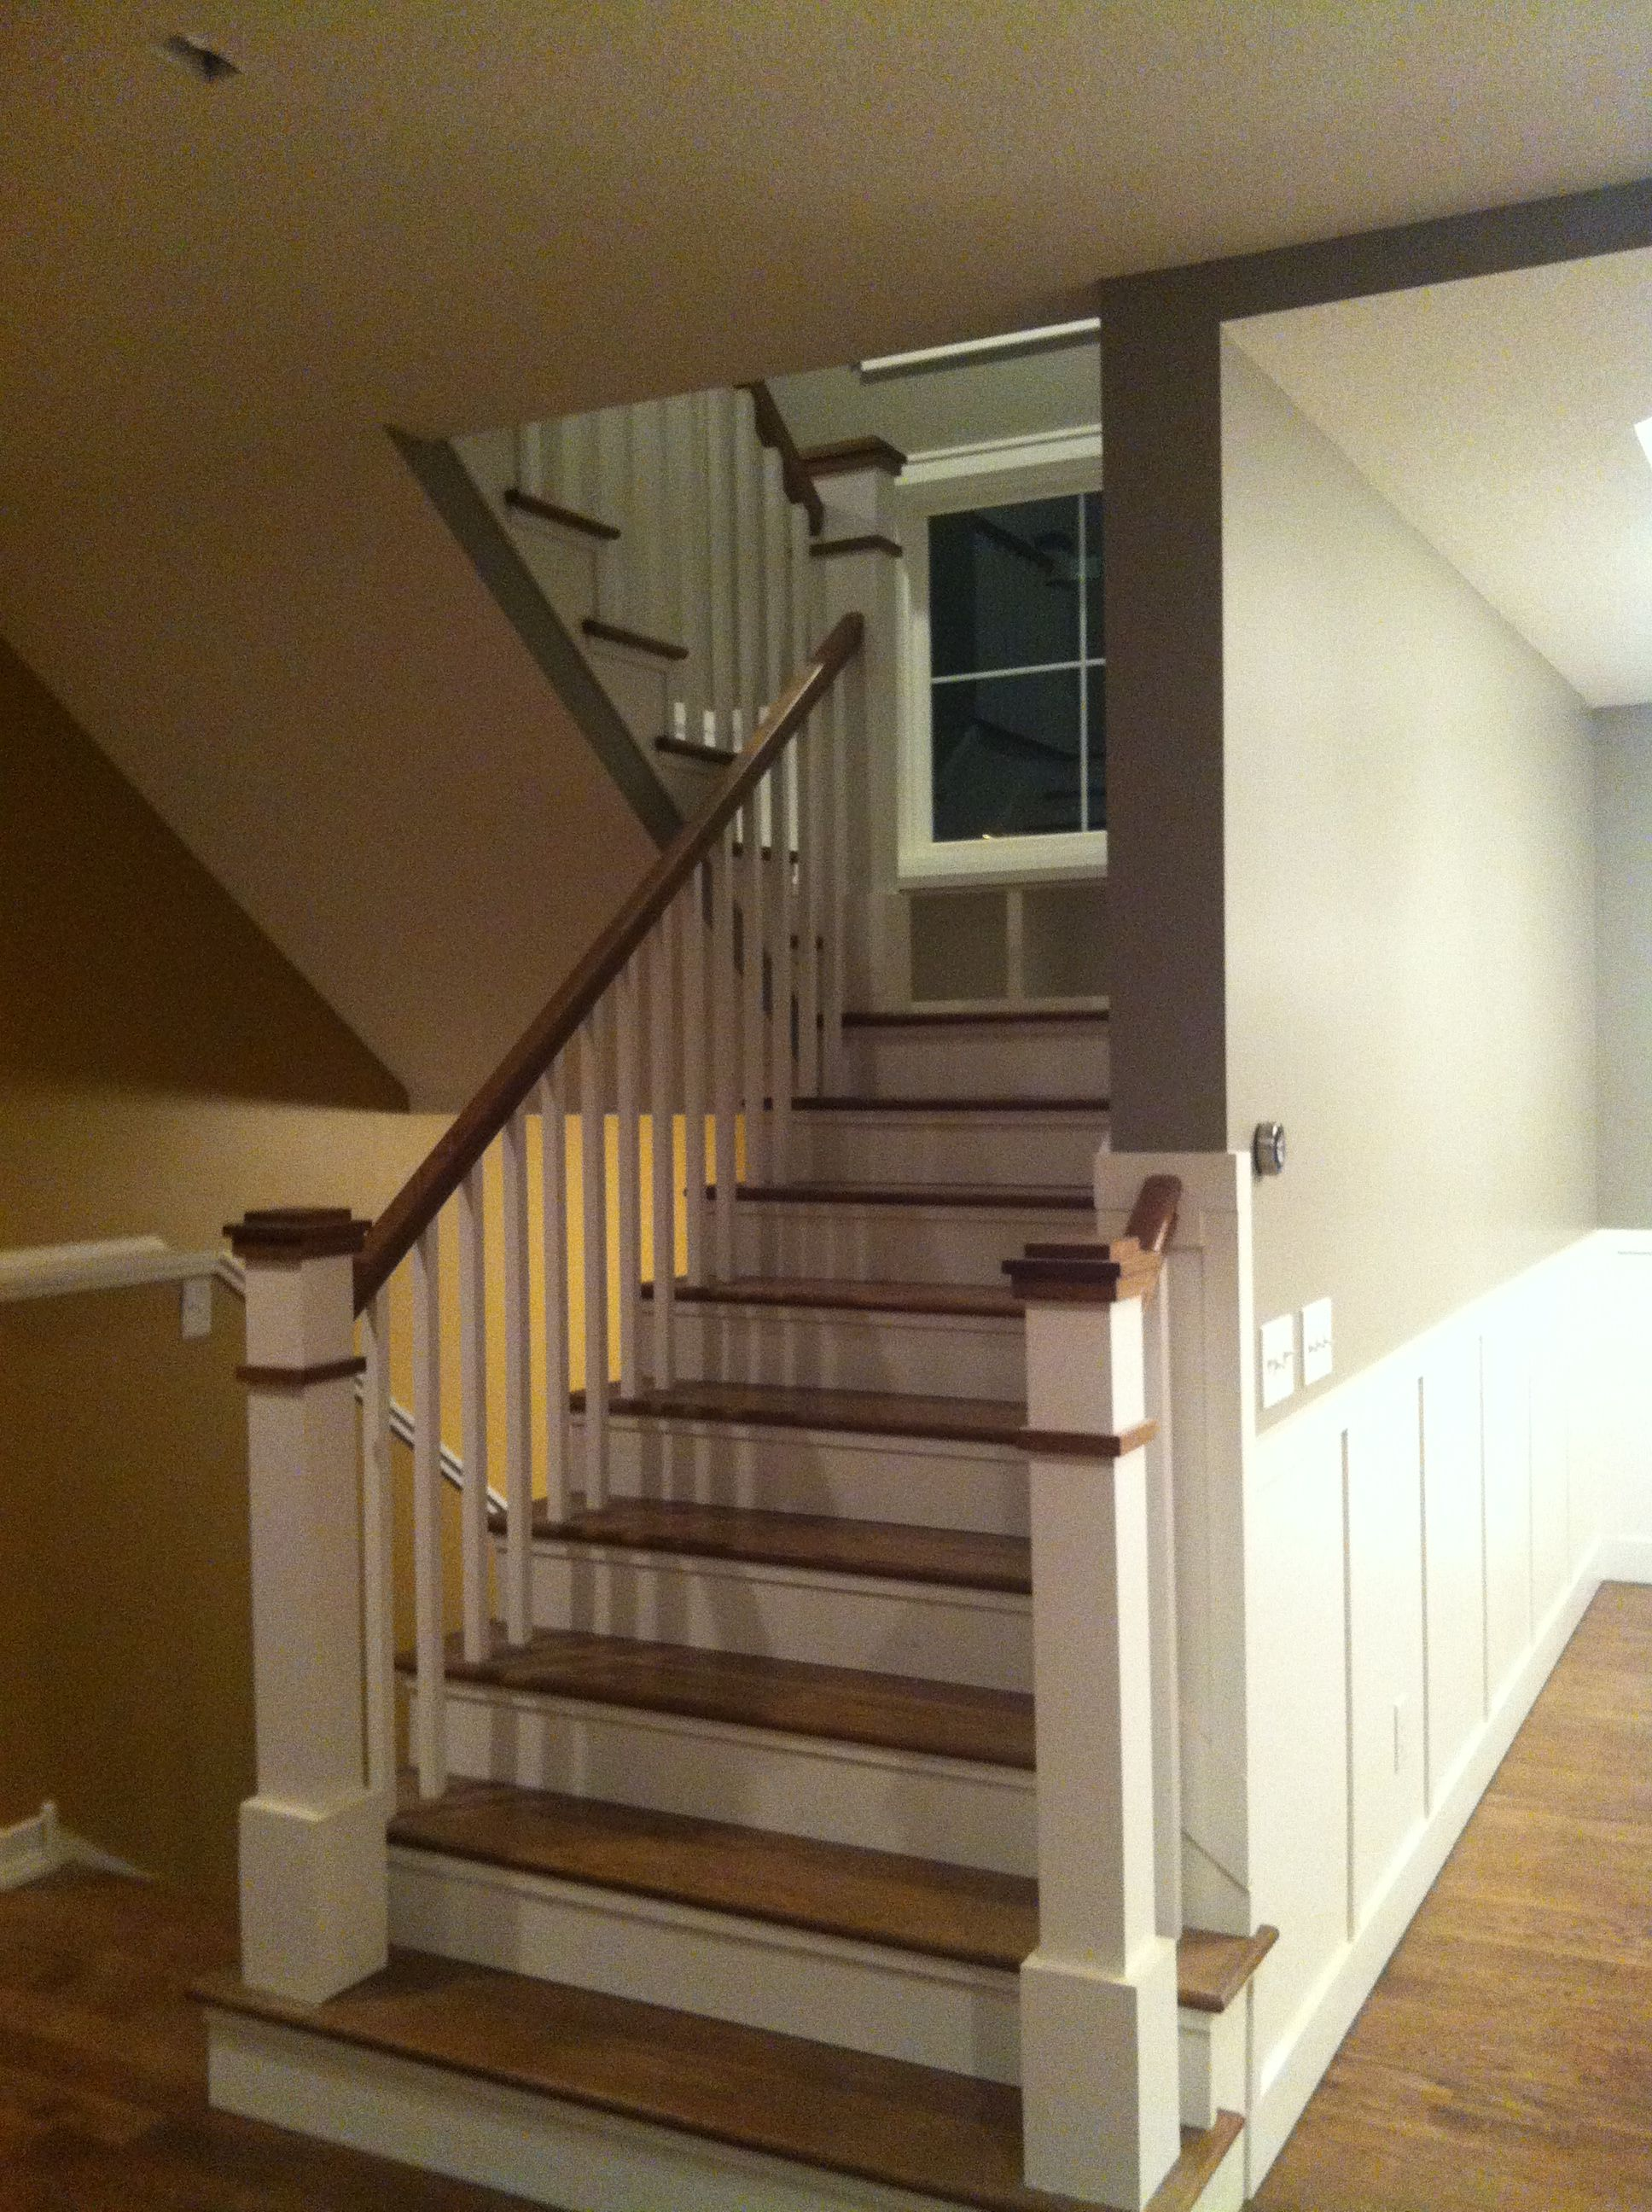 Staircase Window Seat On Landing Custom Newell Post Dark Treads White Risers On Stairs